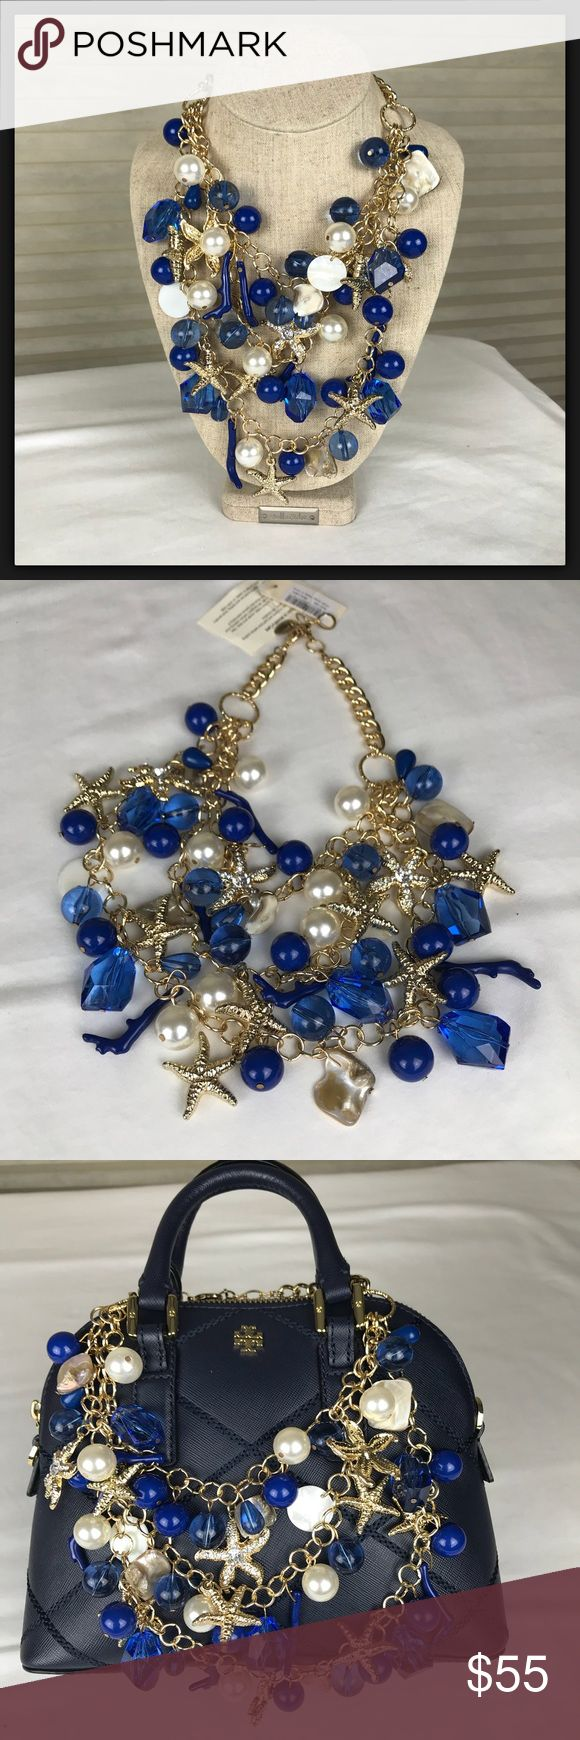 "NWT Nautical Statement Necklace Blue w/Charms NWT Nautical Statement Necklace that is loaded with beachy charms such as starfish, shells, beach glass, coral and faux pearls. You will be the ""star"" in this necklace for sure! This is a stunner and would pair well with a bikini, daywear, or out for the evening! Fab with a strapless dress and very ""Palm Beach""!! Careful with direct sunscreen lotion or perfumes! Wipe w/ clean cloth. Amrita Singh Jewelry Necklaces"